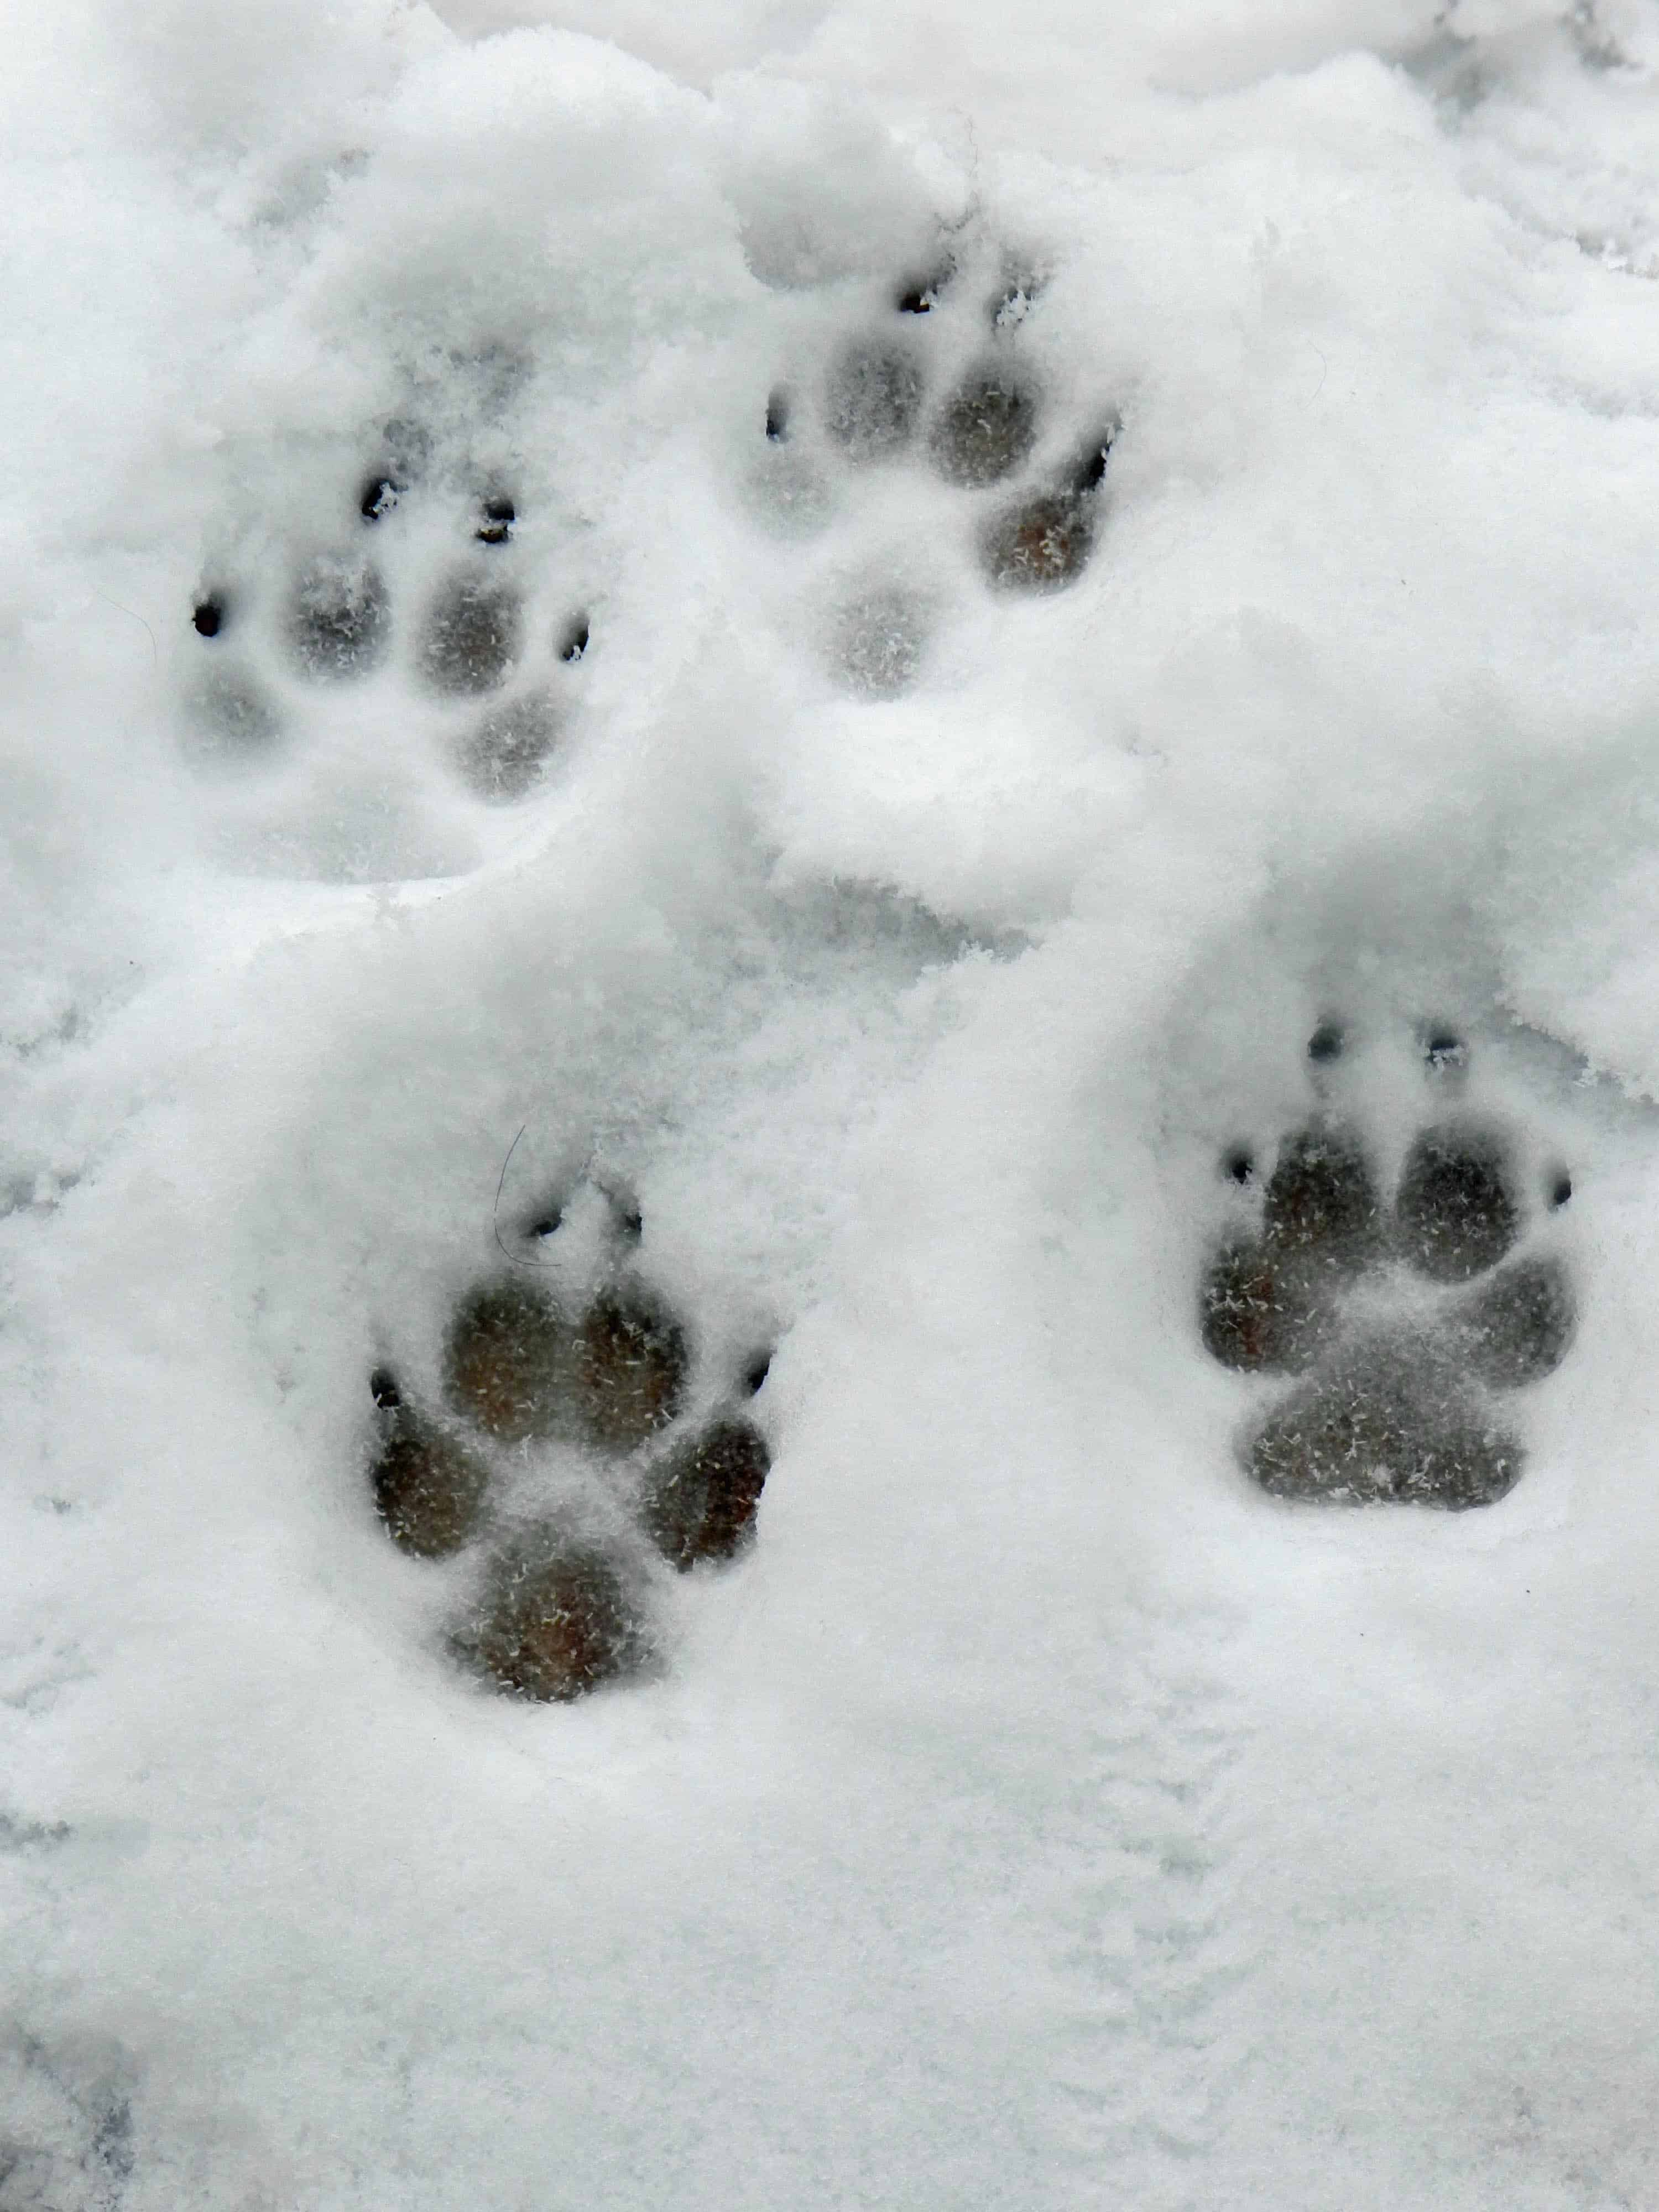 Four paw prints in the snow.